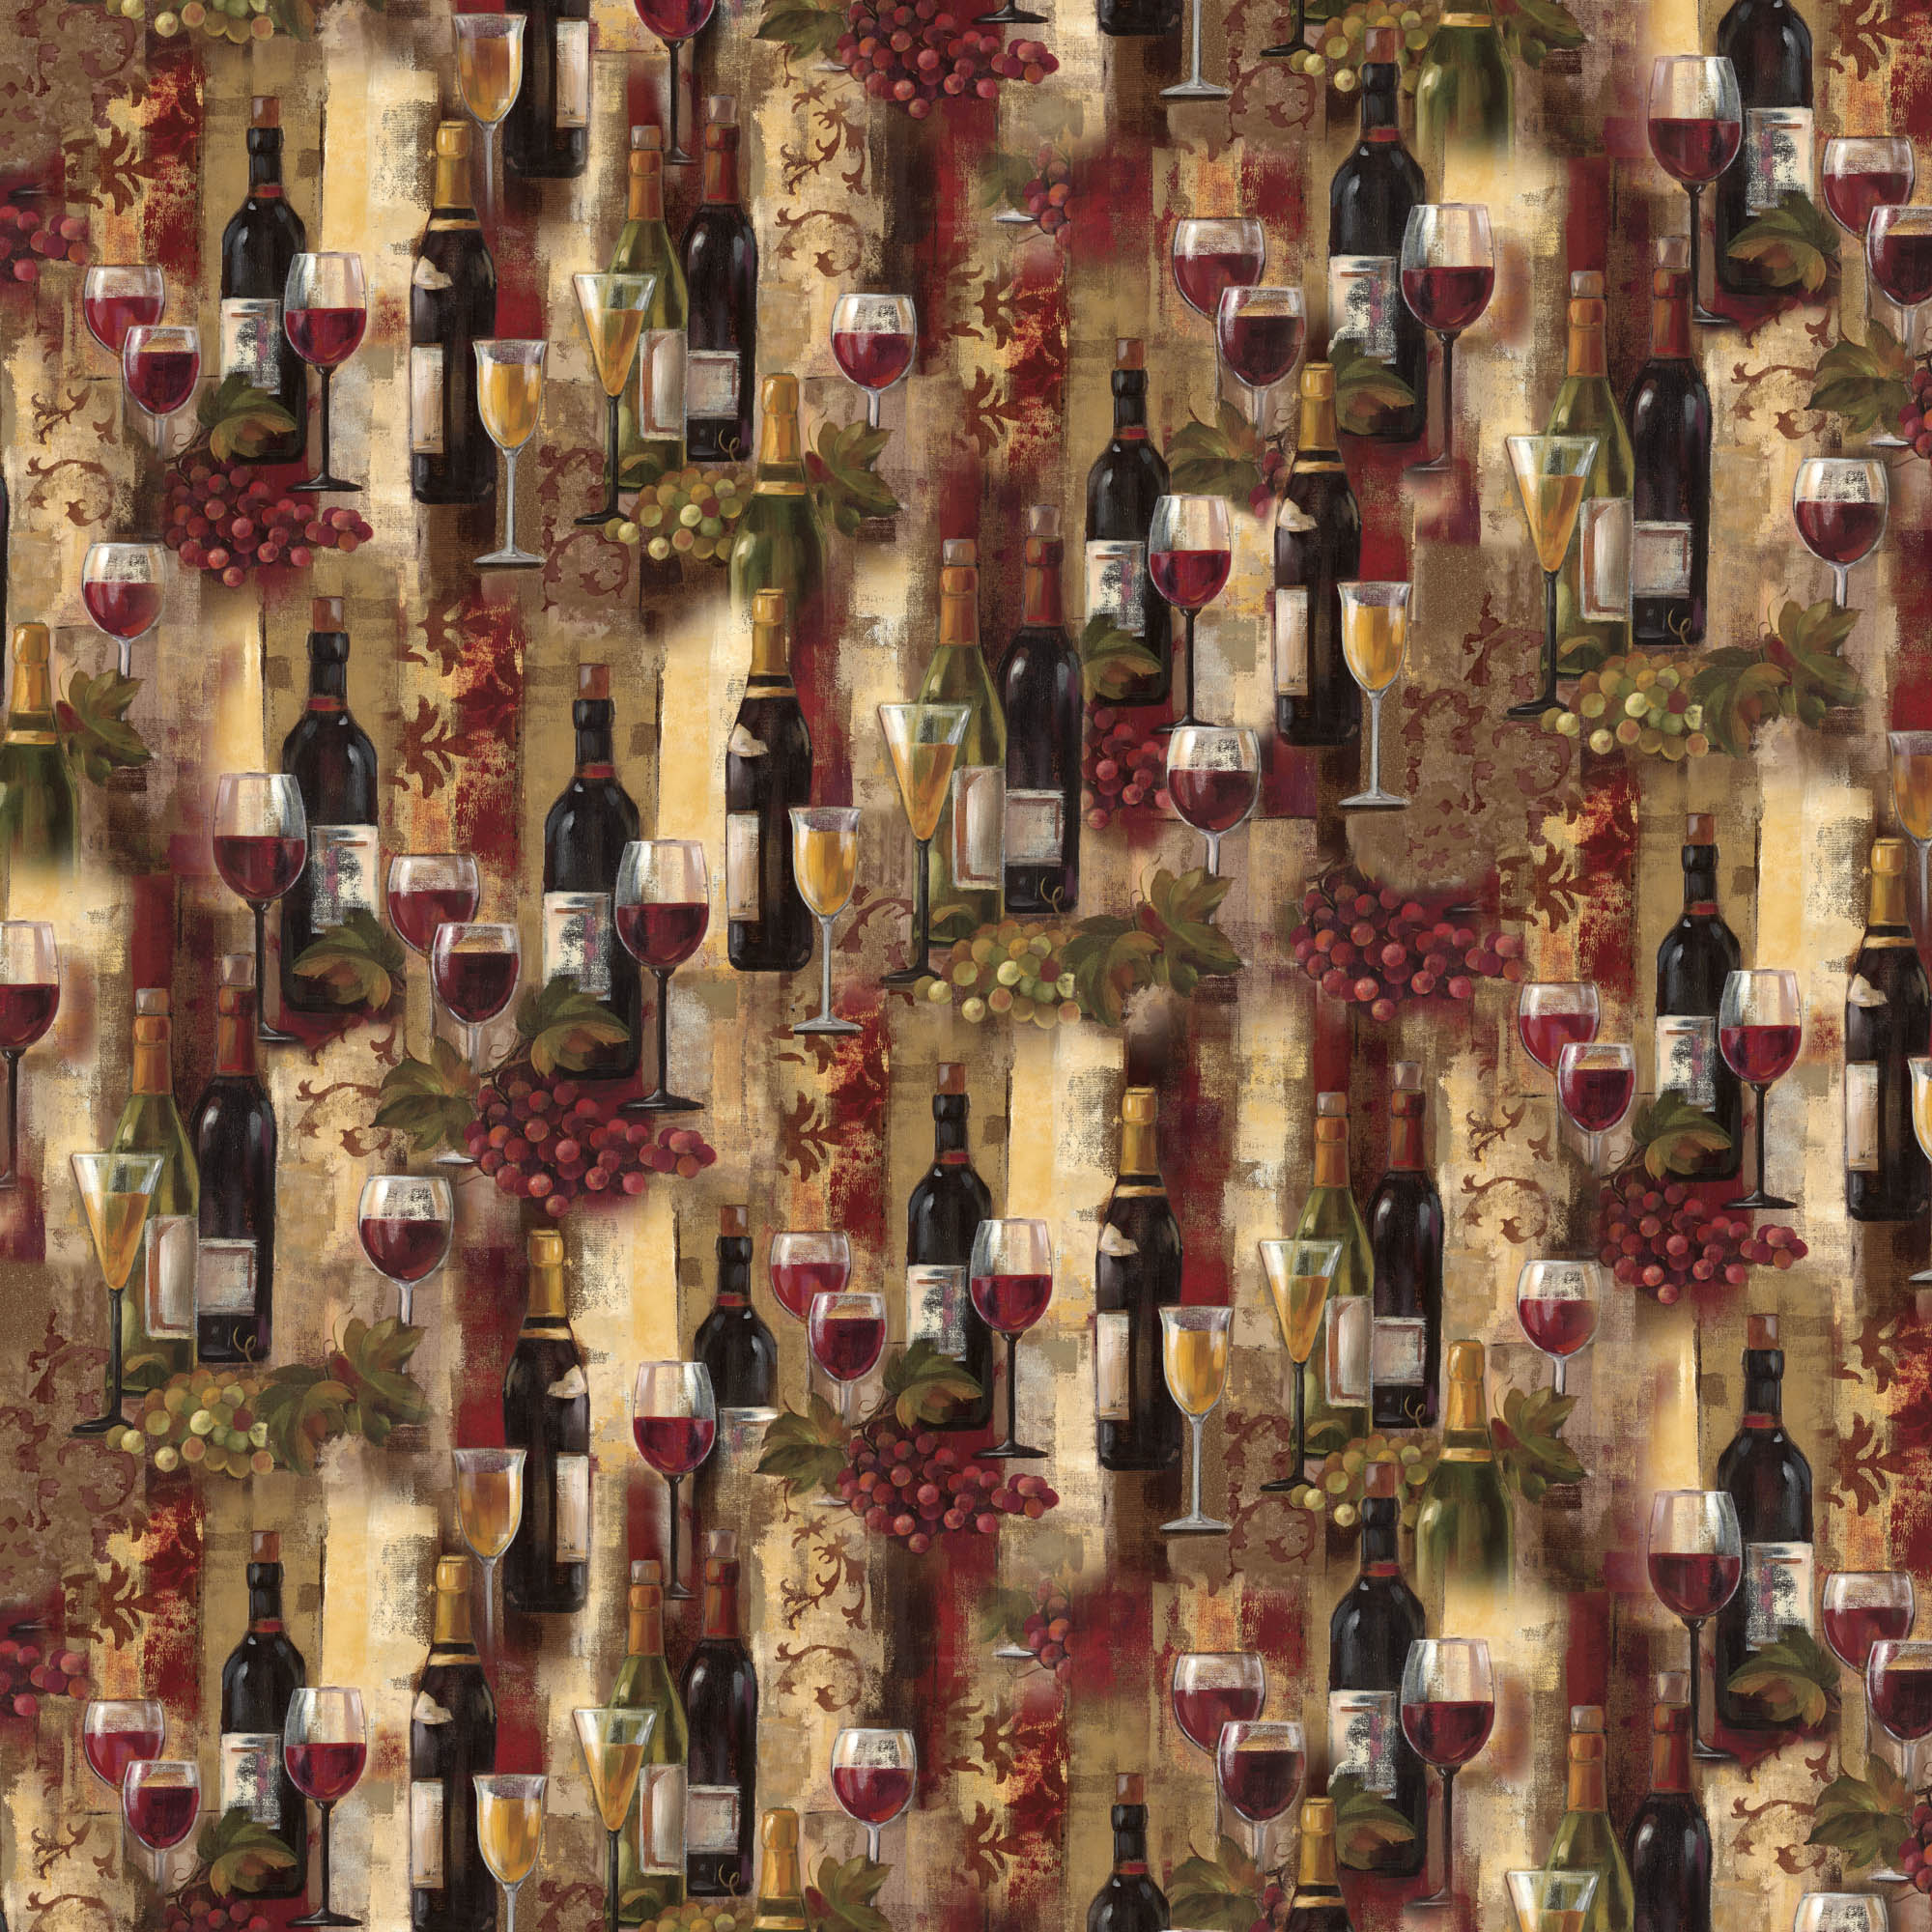 David Textiles Cotton Precut Fabric Wine Splendor 1 Yd X 44 Inches